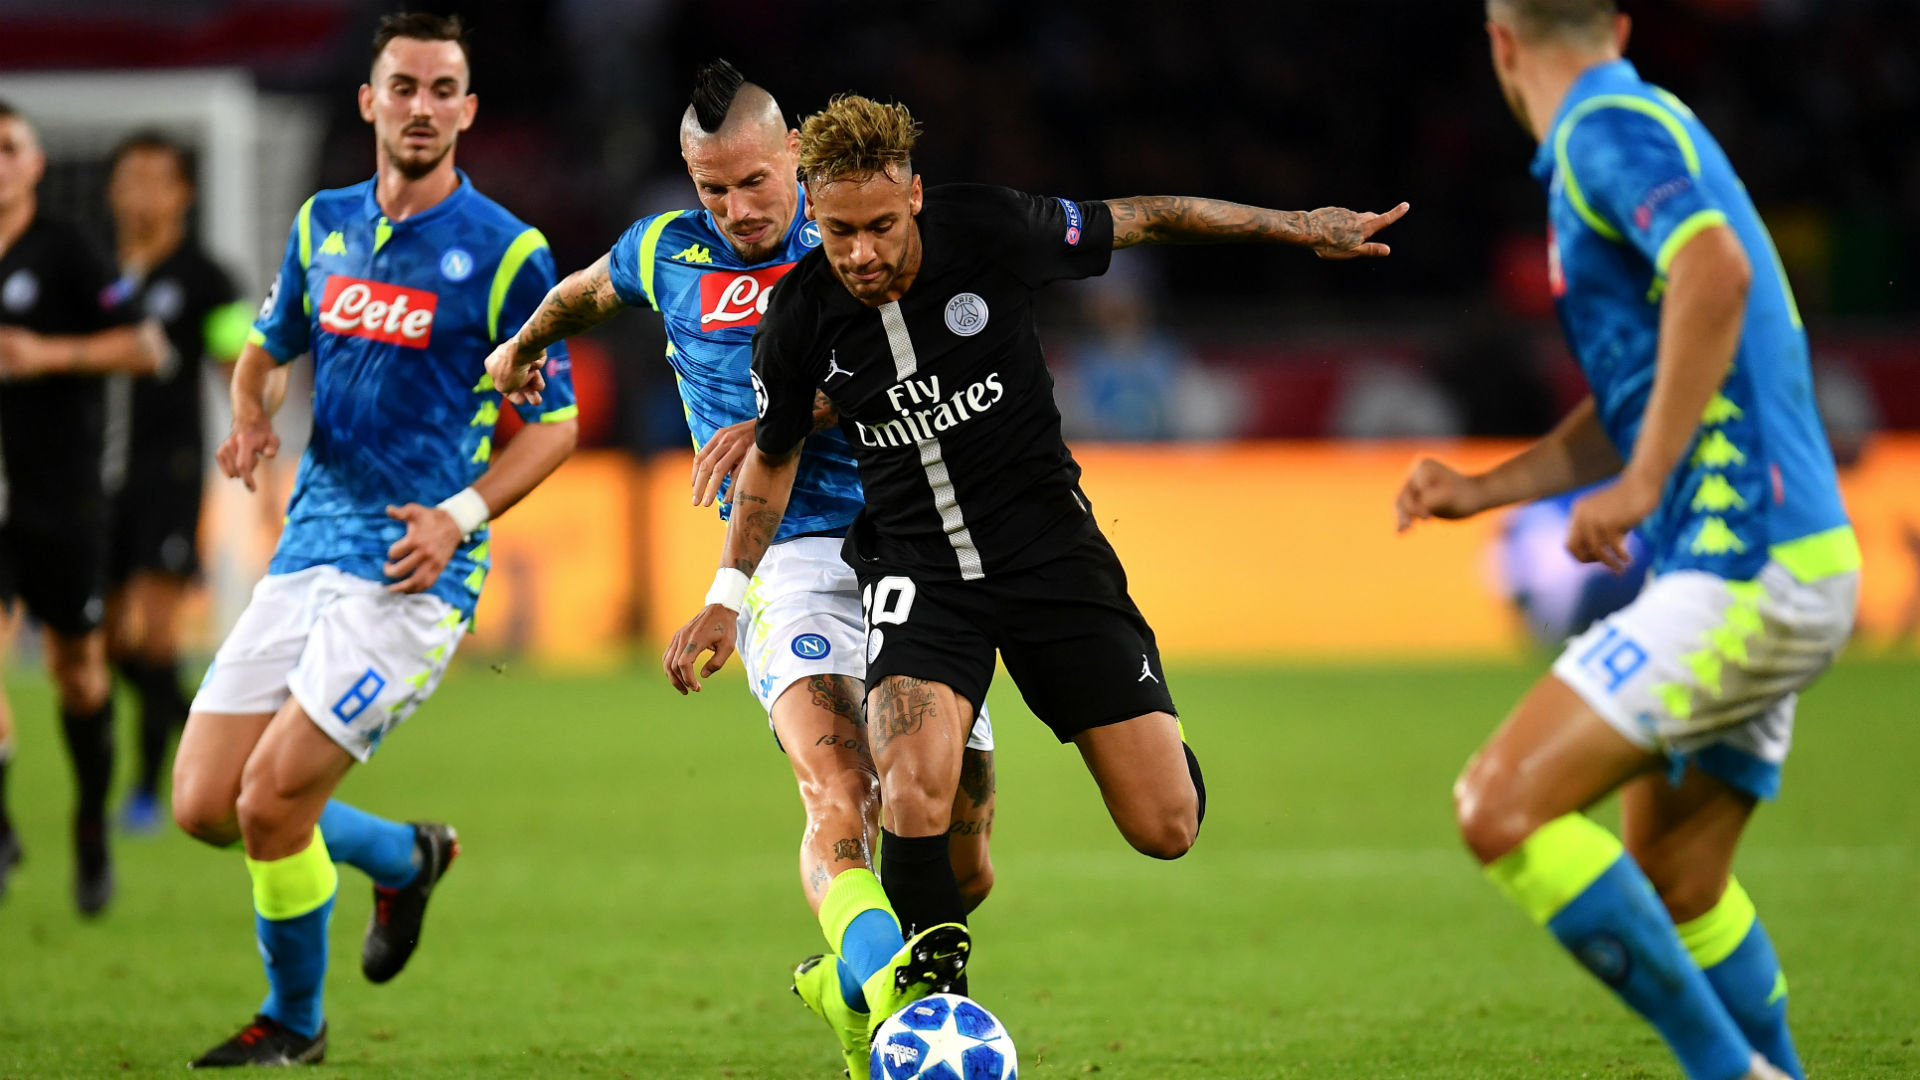 Neymar claims referee 'disrespected' him during Napoli draw